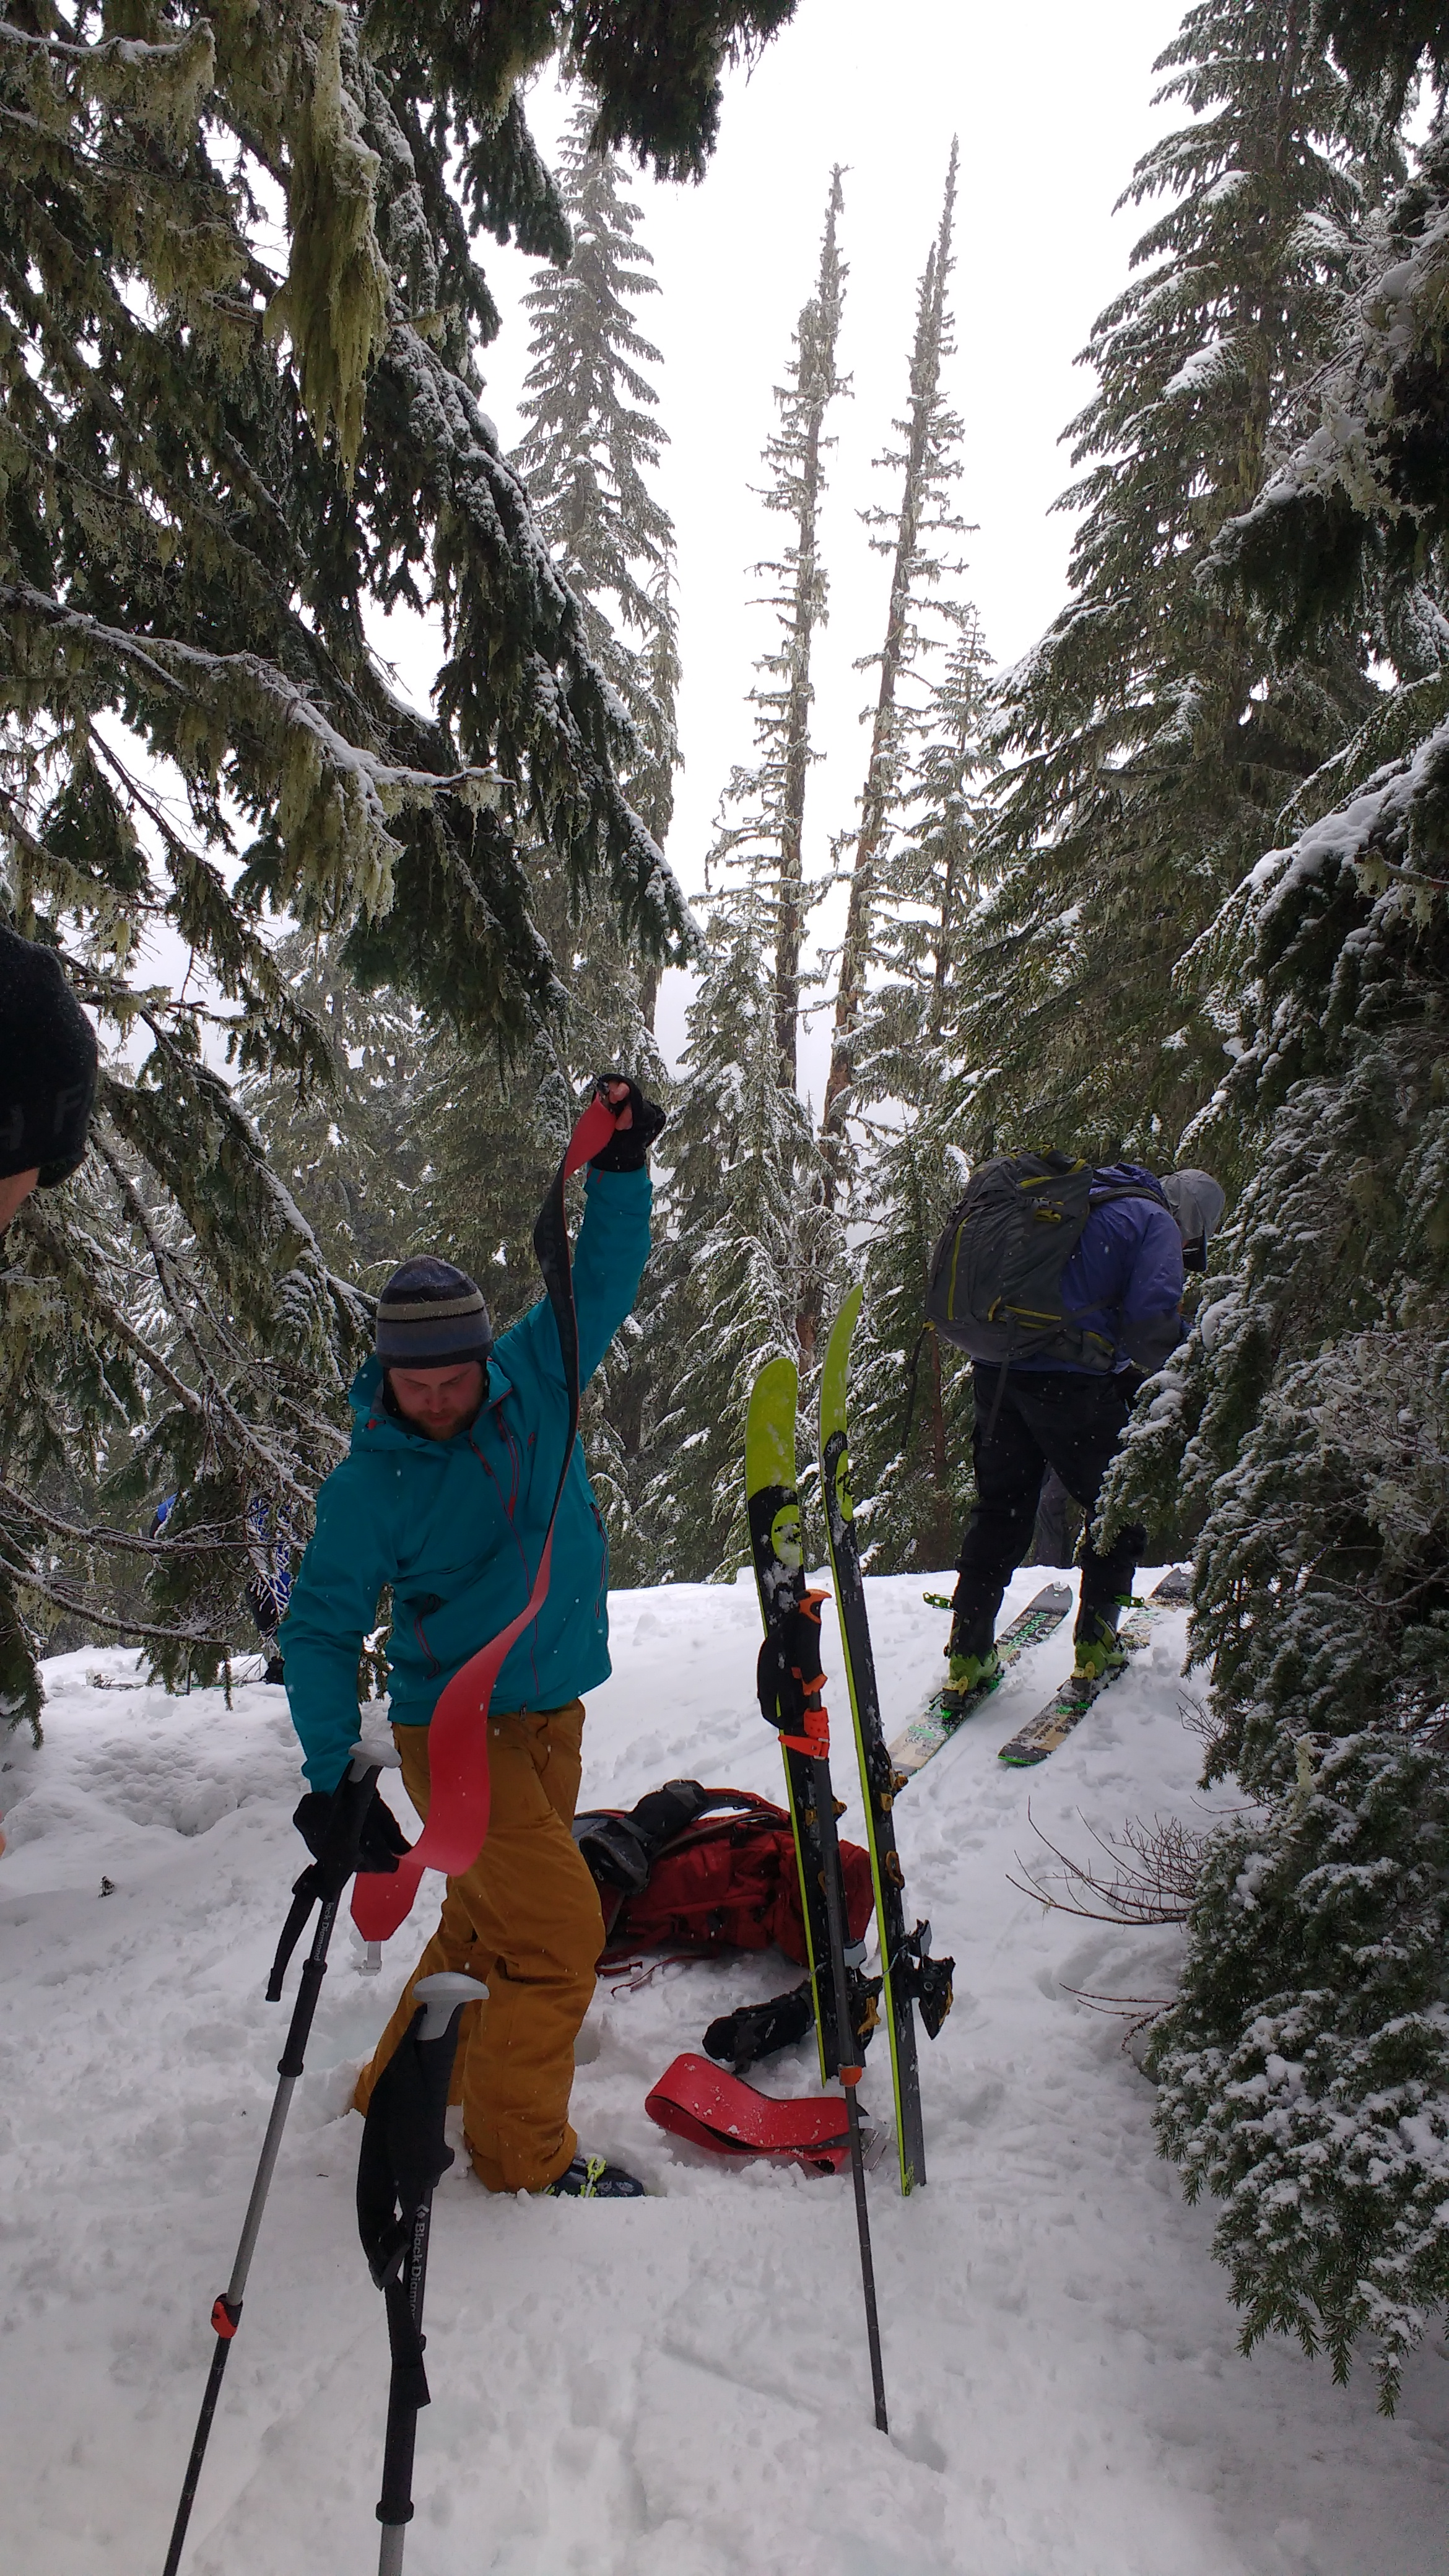 After skinning up to The Refrigerator we prepare to ski!